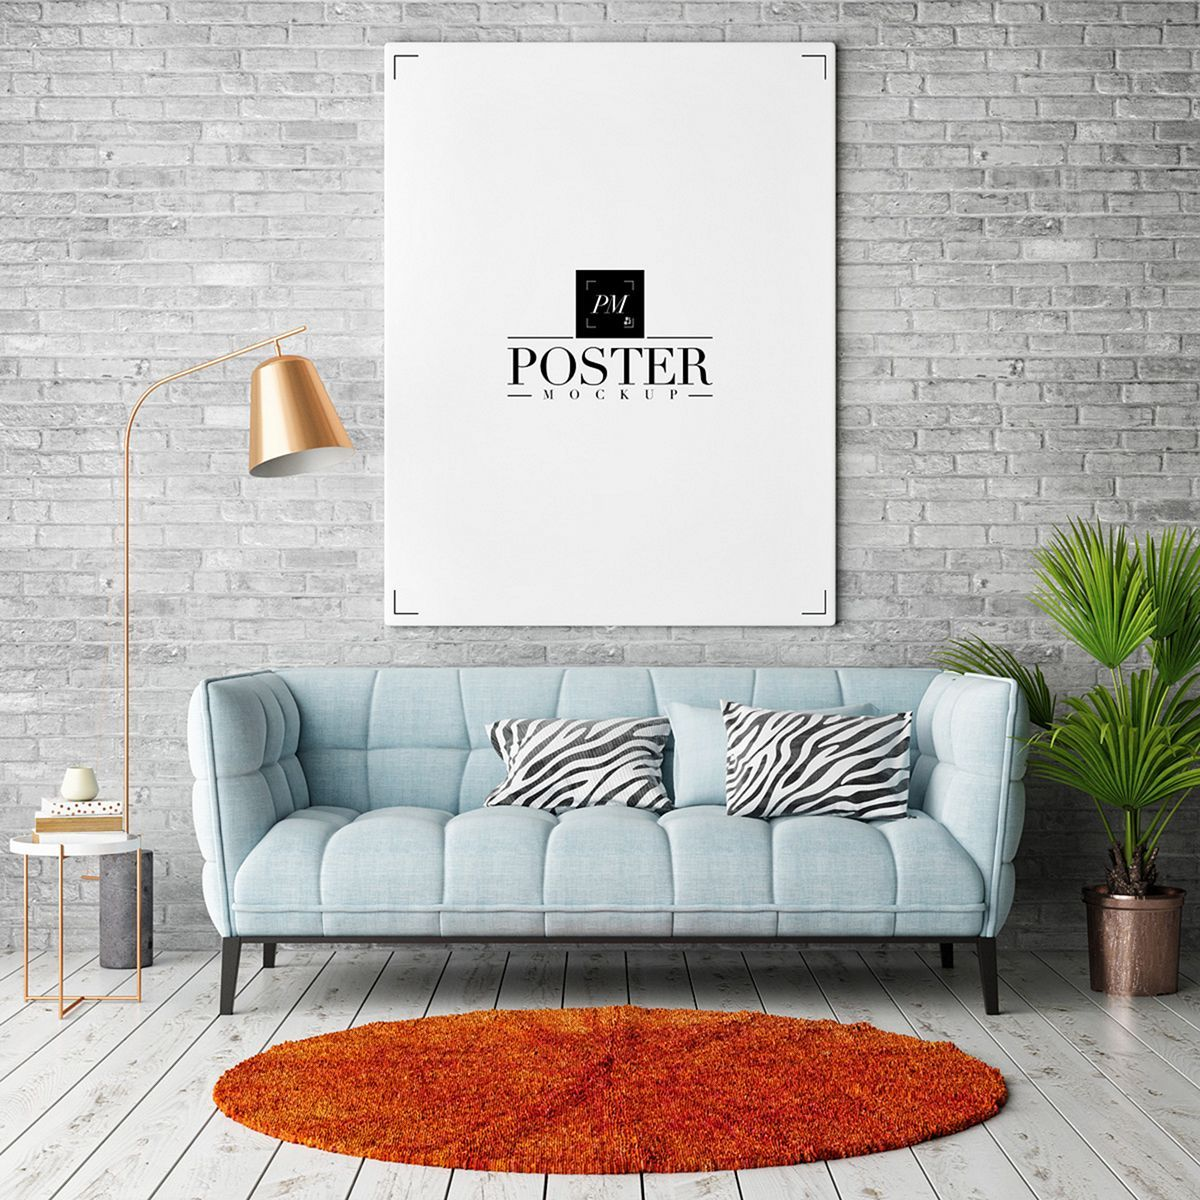 8 Contemporary Living Room Wall Art Poster Ideas That Inspire You Wall Printables Poster Mockup Wall Art Living Room